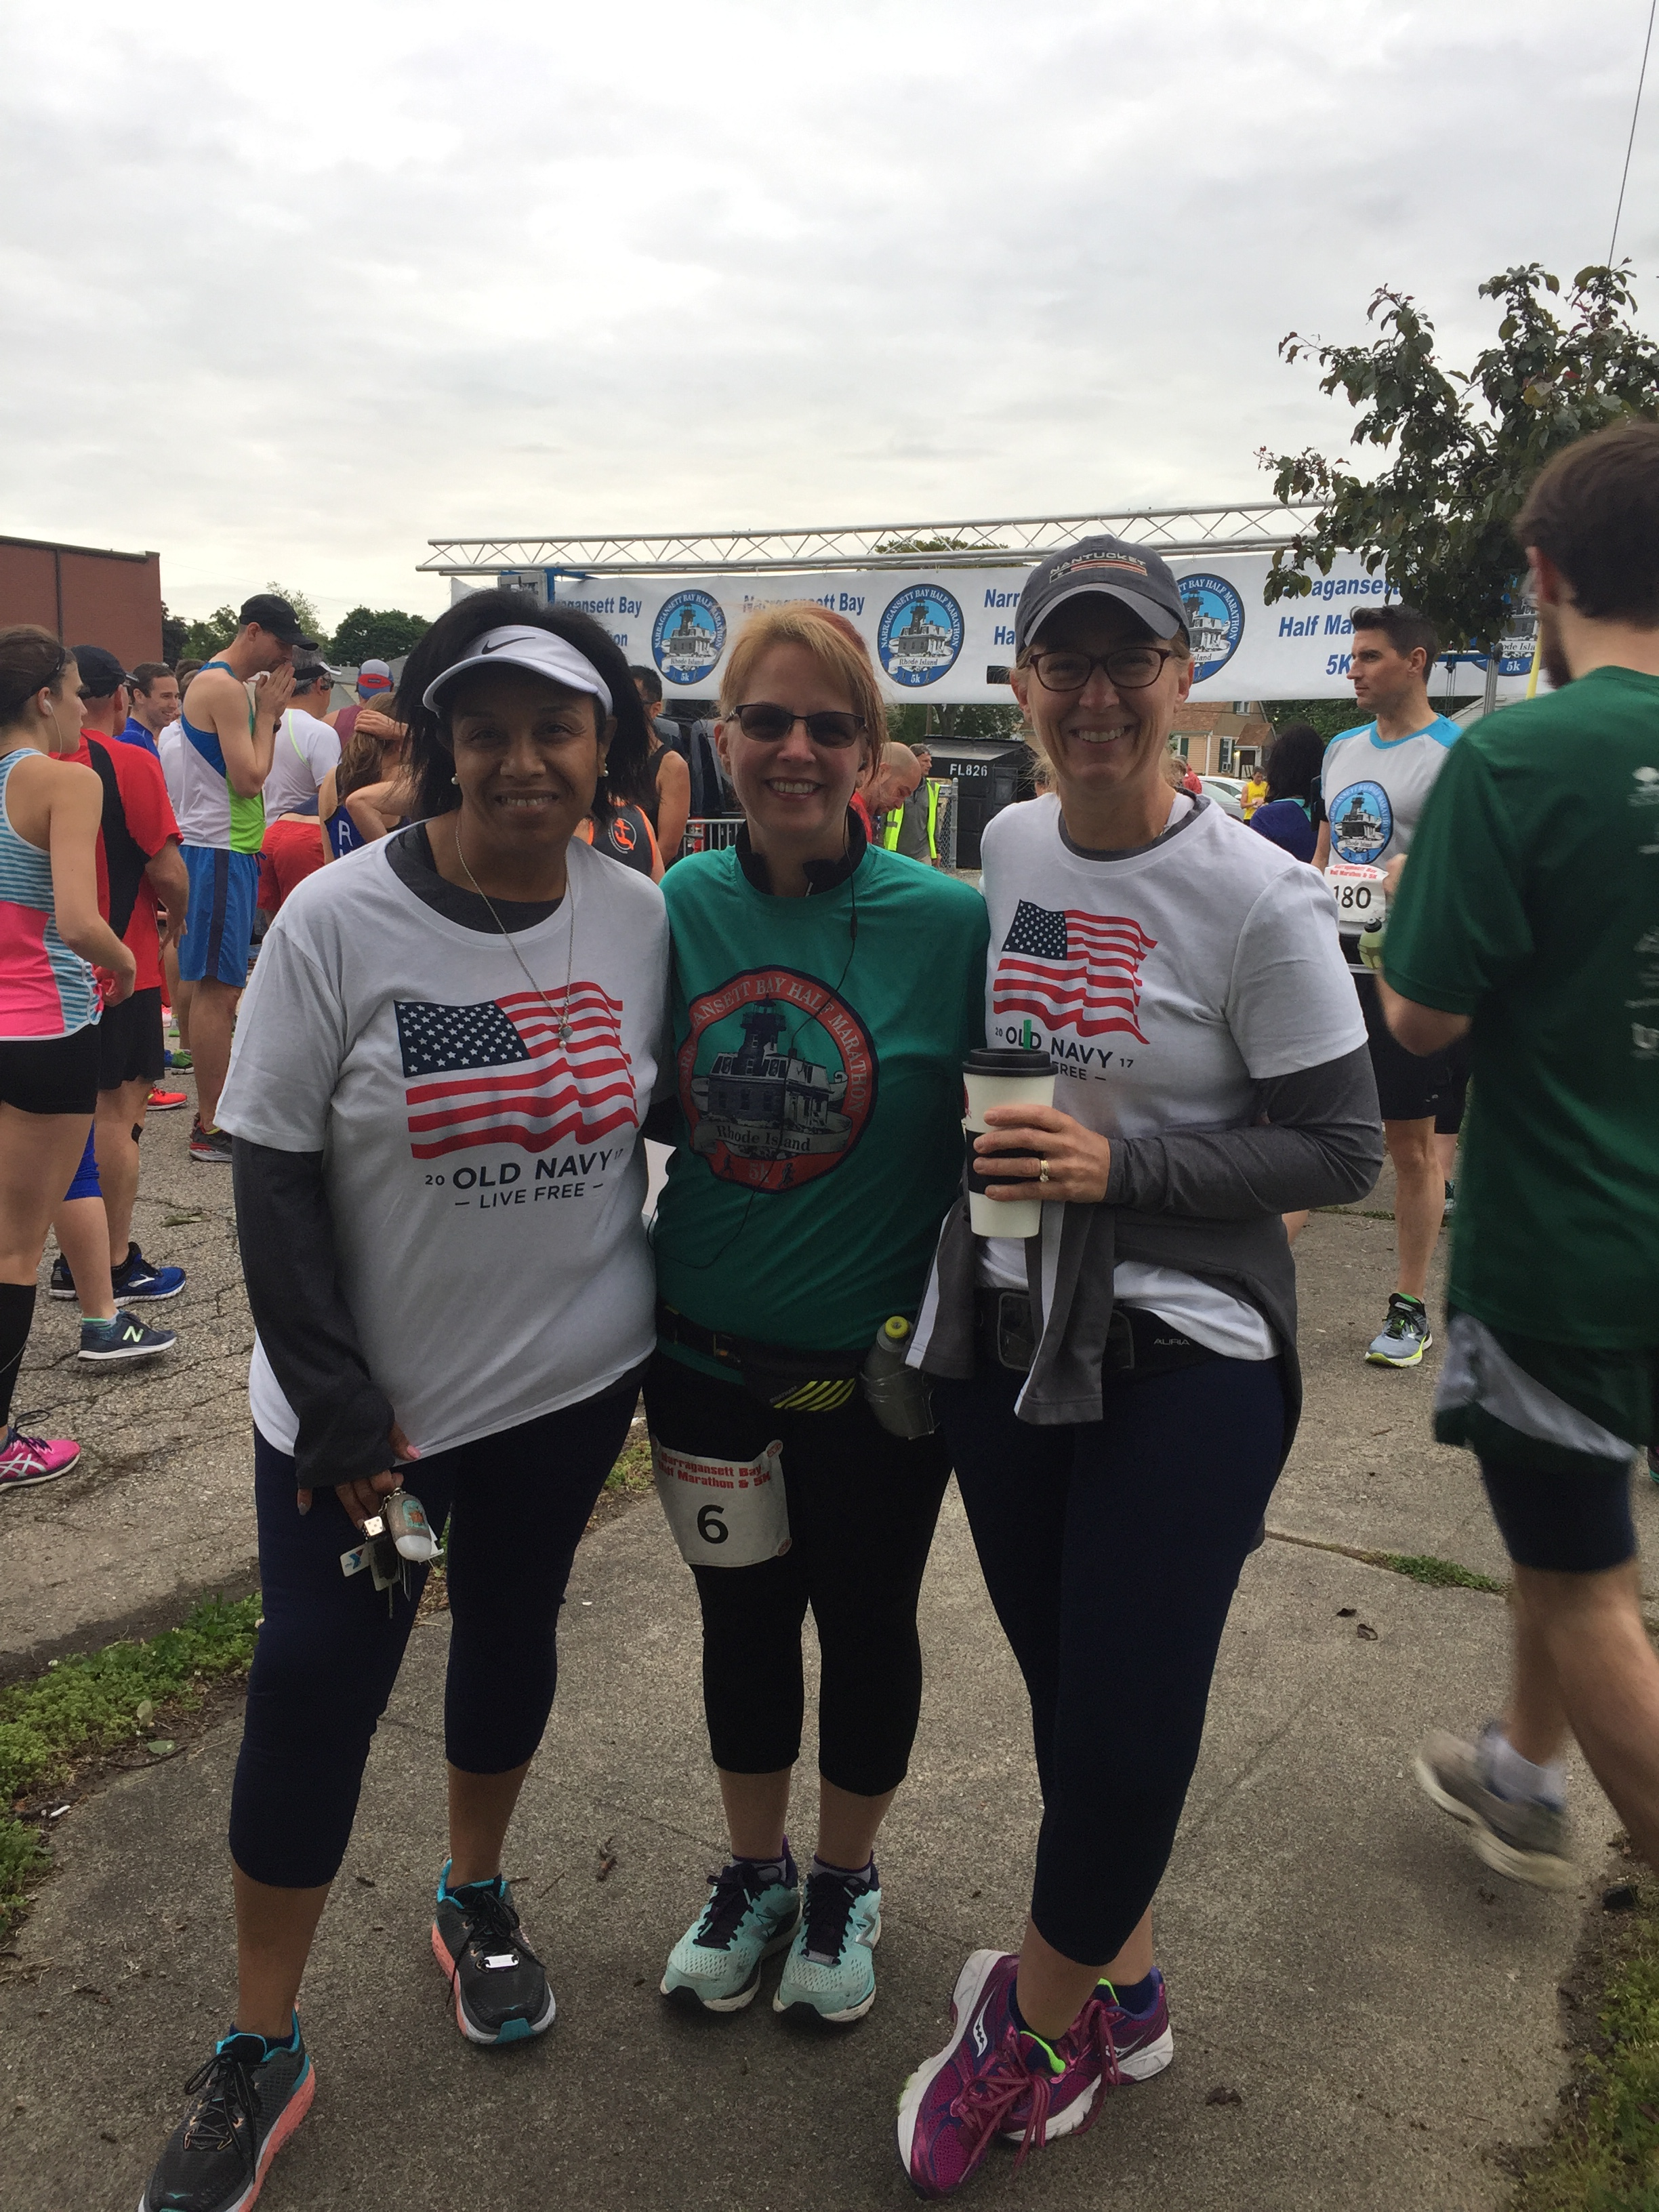 Cheered Heather (middle) on during her first Half Marathon in East Providence, RI. Kristen (right) and I did a lot of Heather's 13.1 training with her. 2017 Sole Sisters <3